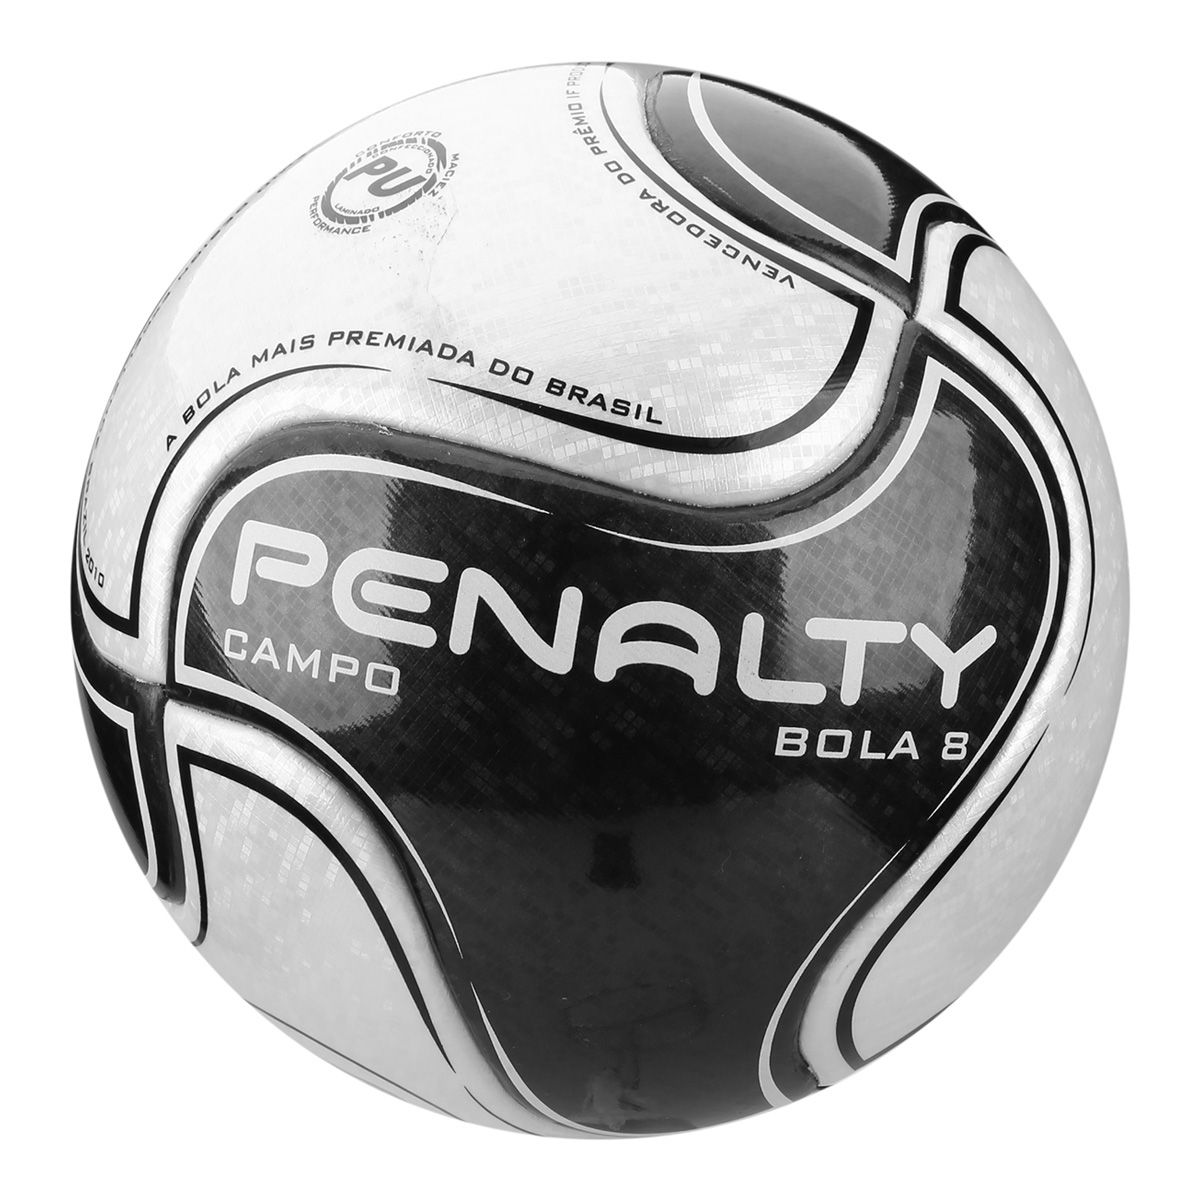 23d59c891 Marca Penalty - Página 6 - Busca na Joinville Sportcenter